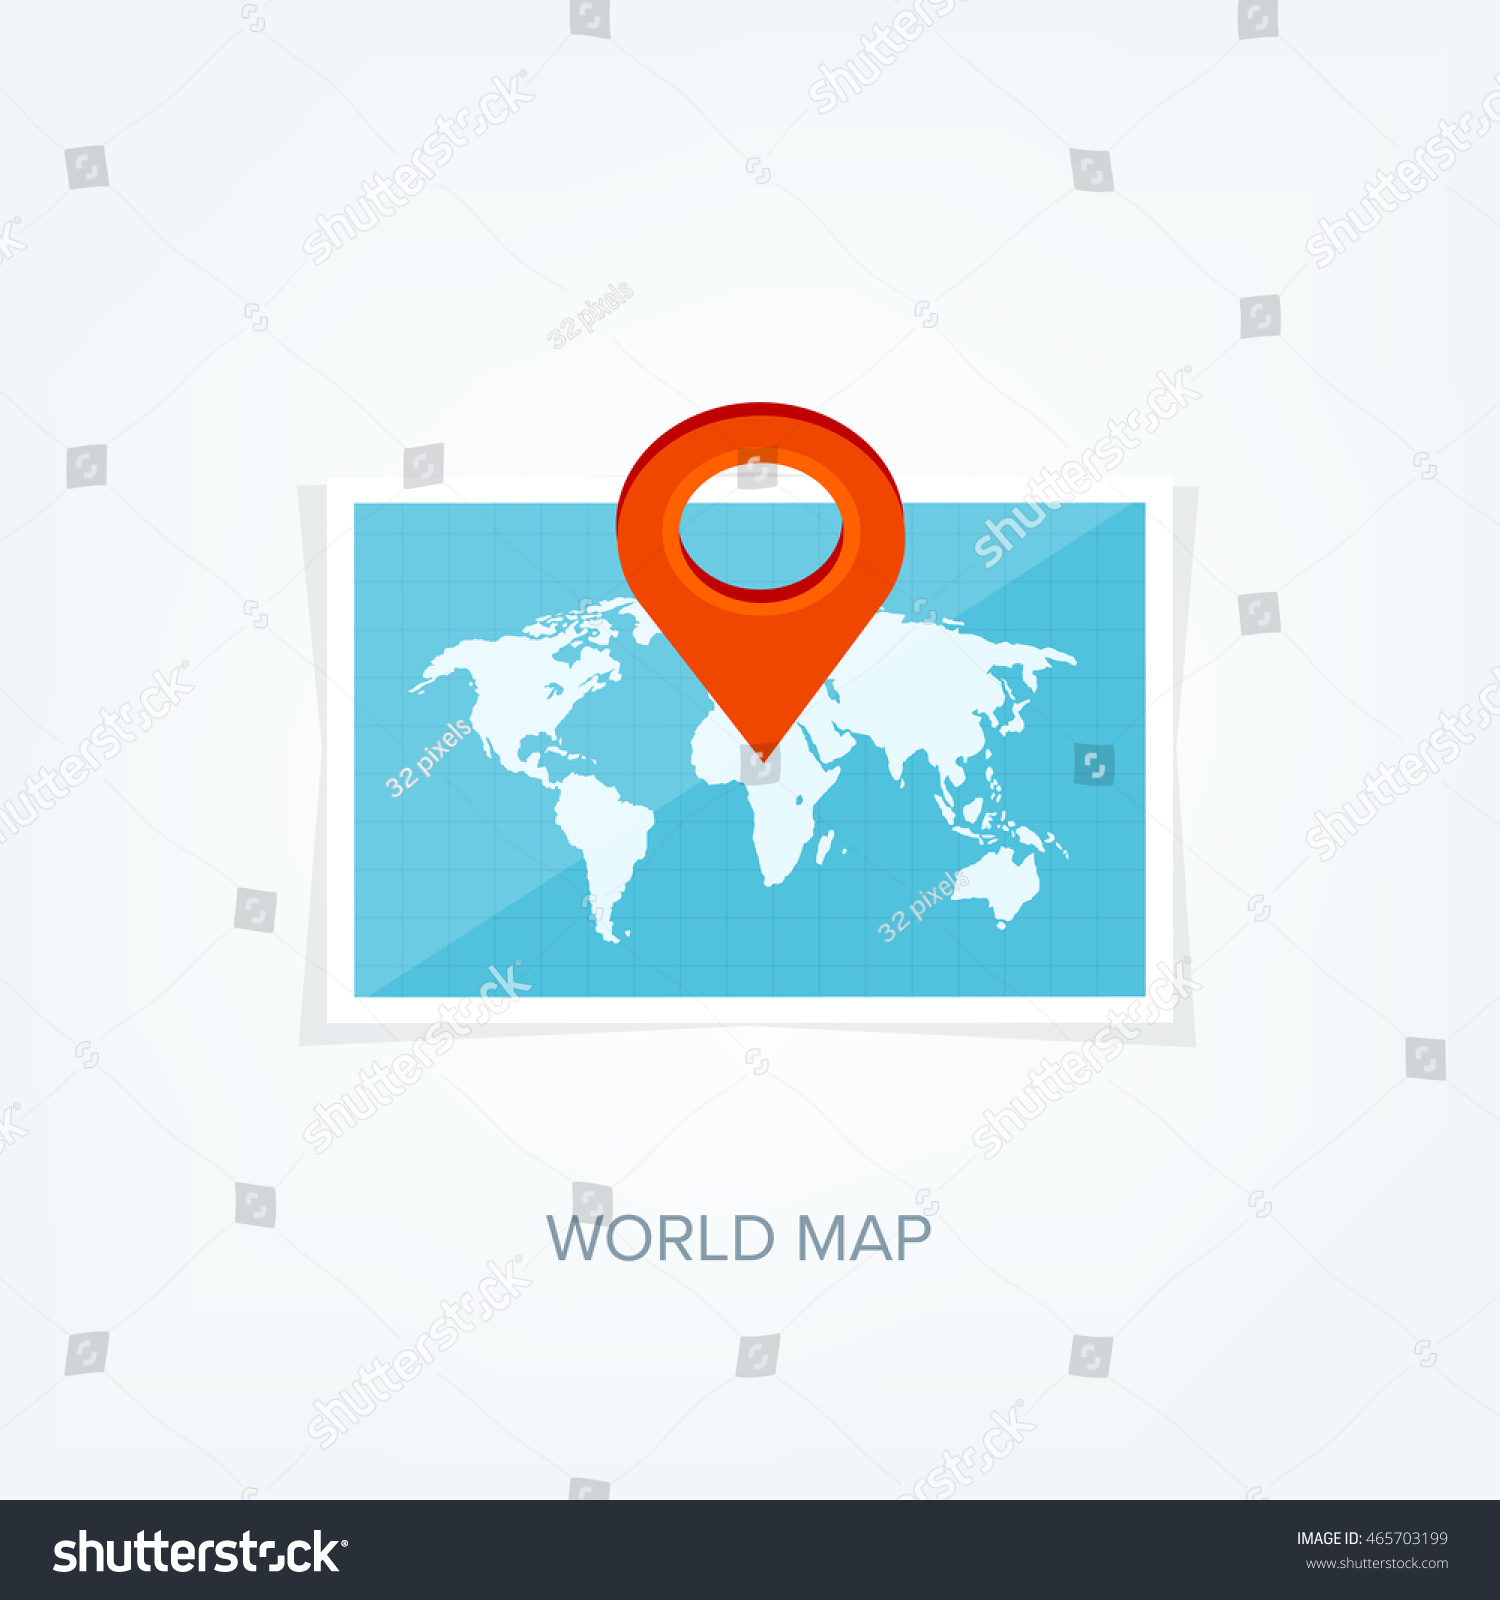 World Map Flat Style Earthglobe Route Planning Asia Africa North